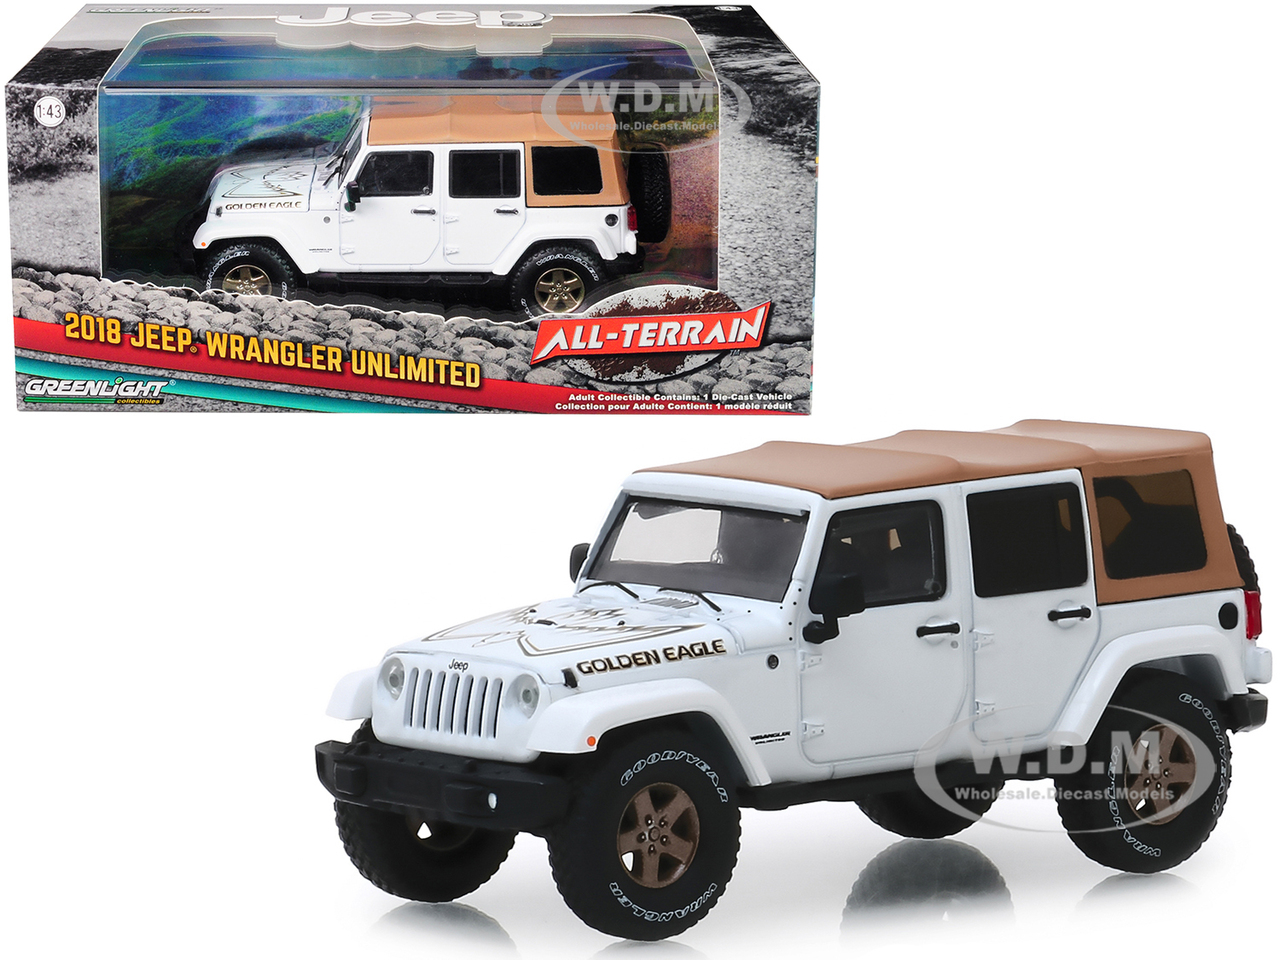 All White Jeep Wrangler >> 2018 Jeep Wrangler Unlimited Golden Eagle White With Tan Top All Terrain Series 1 43 Diecast Model Car By Greenlight